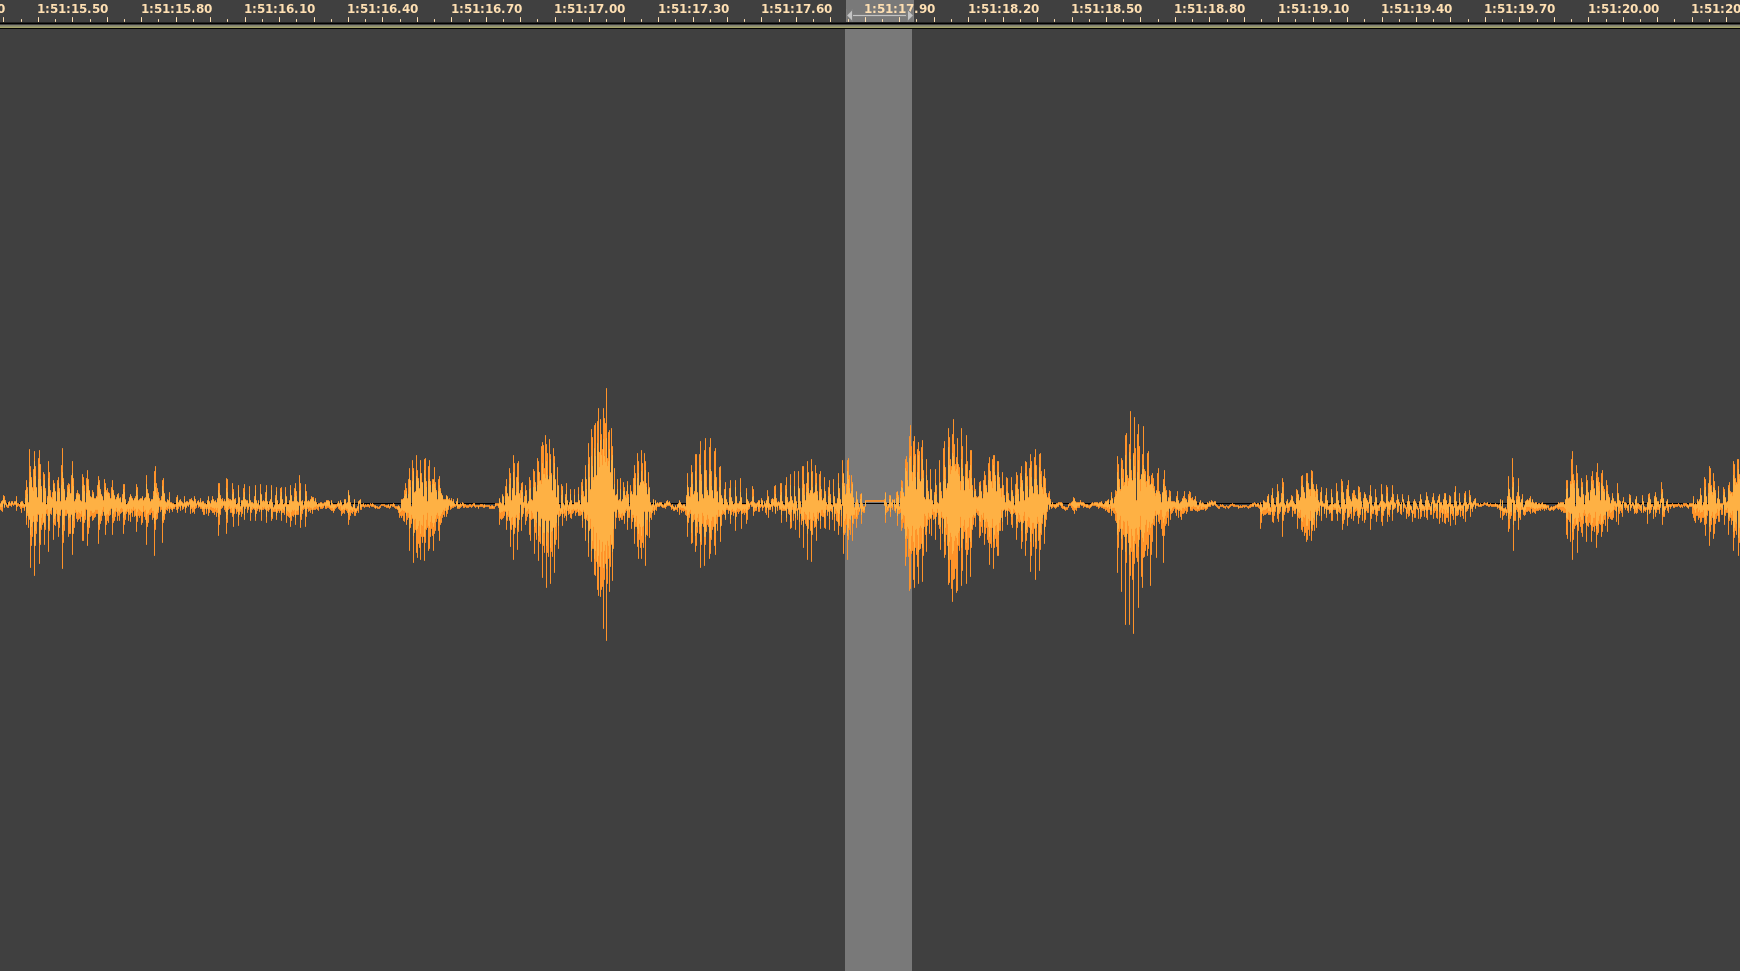 audacity-silence-waveform.png